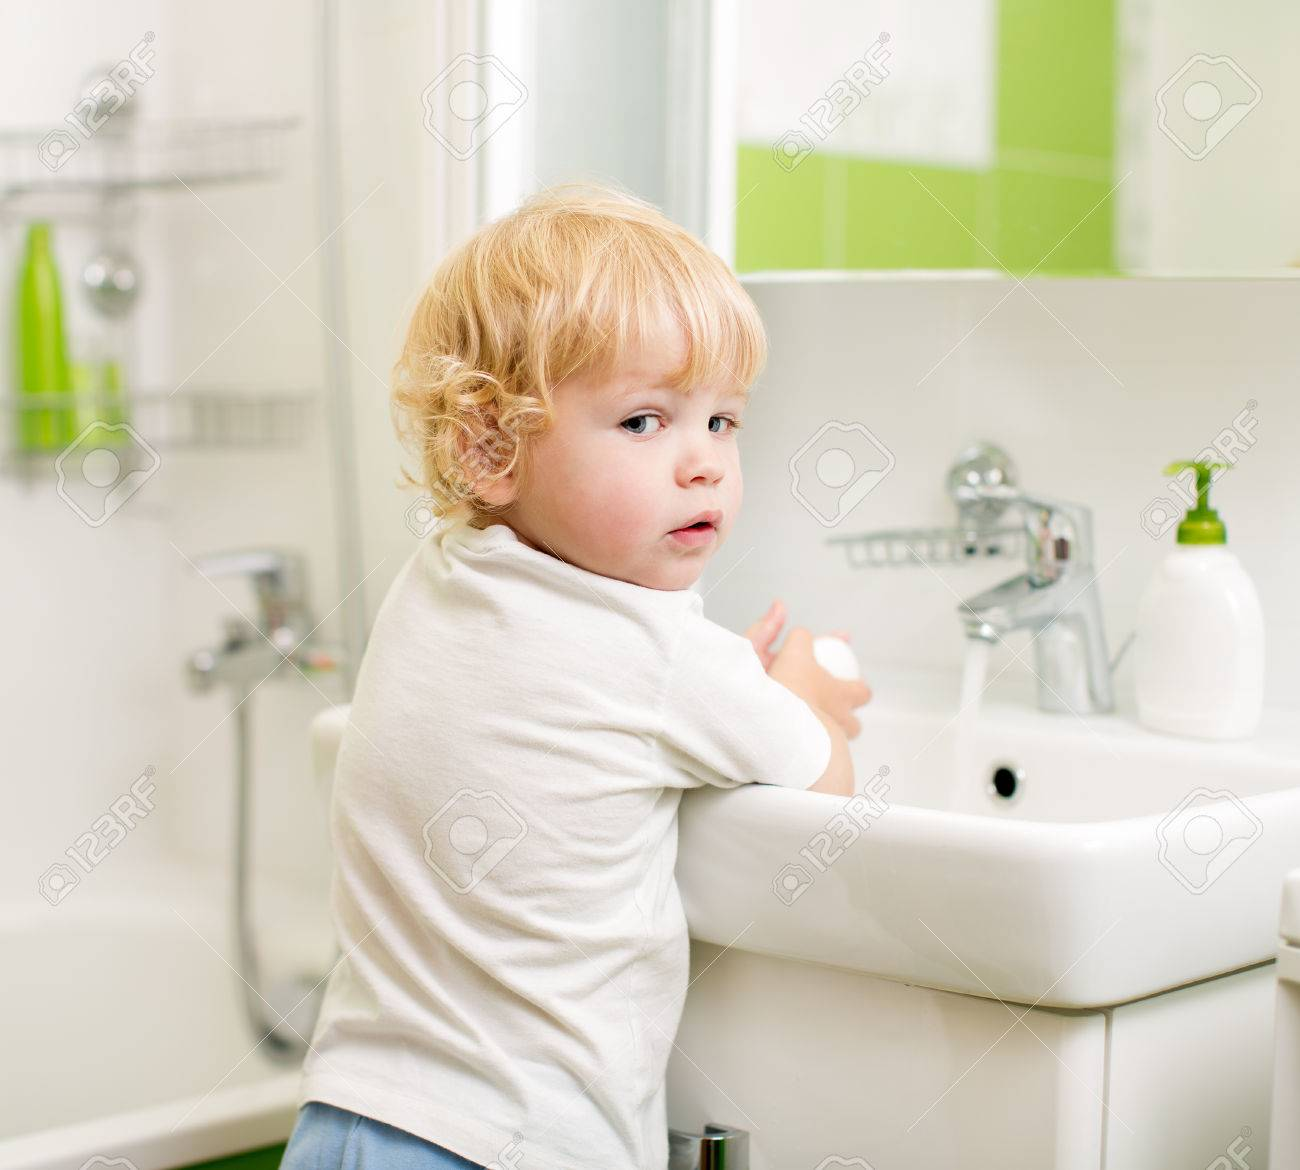 kid washing hands with soap in bathroom Stock Photo - 22806699